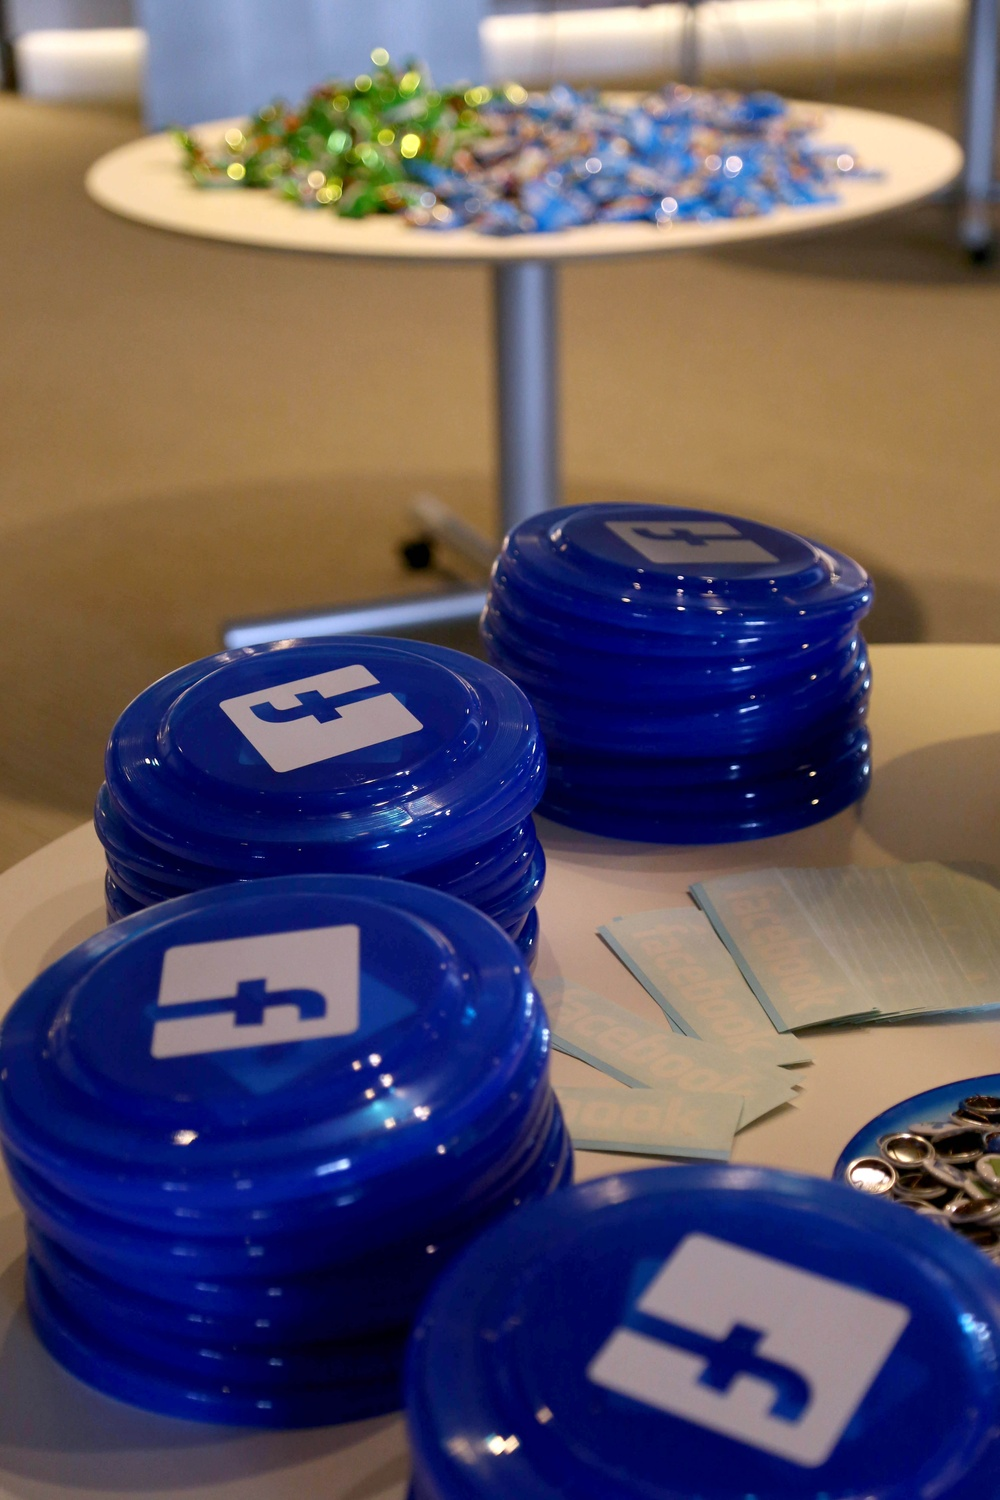 A table full of Facebook paraphernalia rests next to another filled with snacks at CS50 Puzzle Day on September 6, 2014. The Facebook-sponsored event included a photobooth and electronic giveaways.